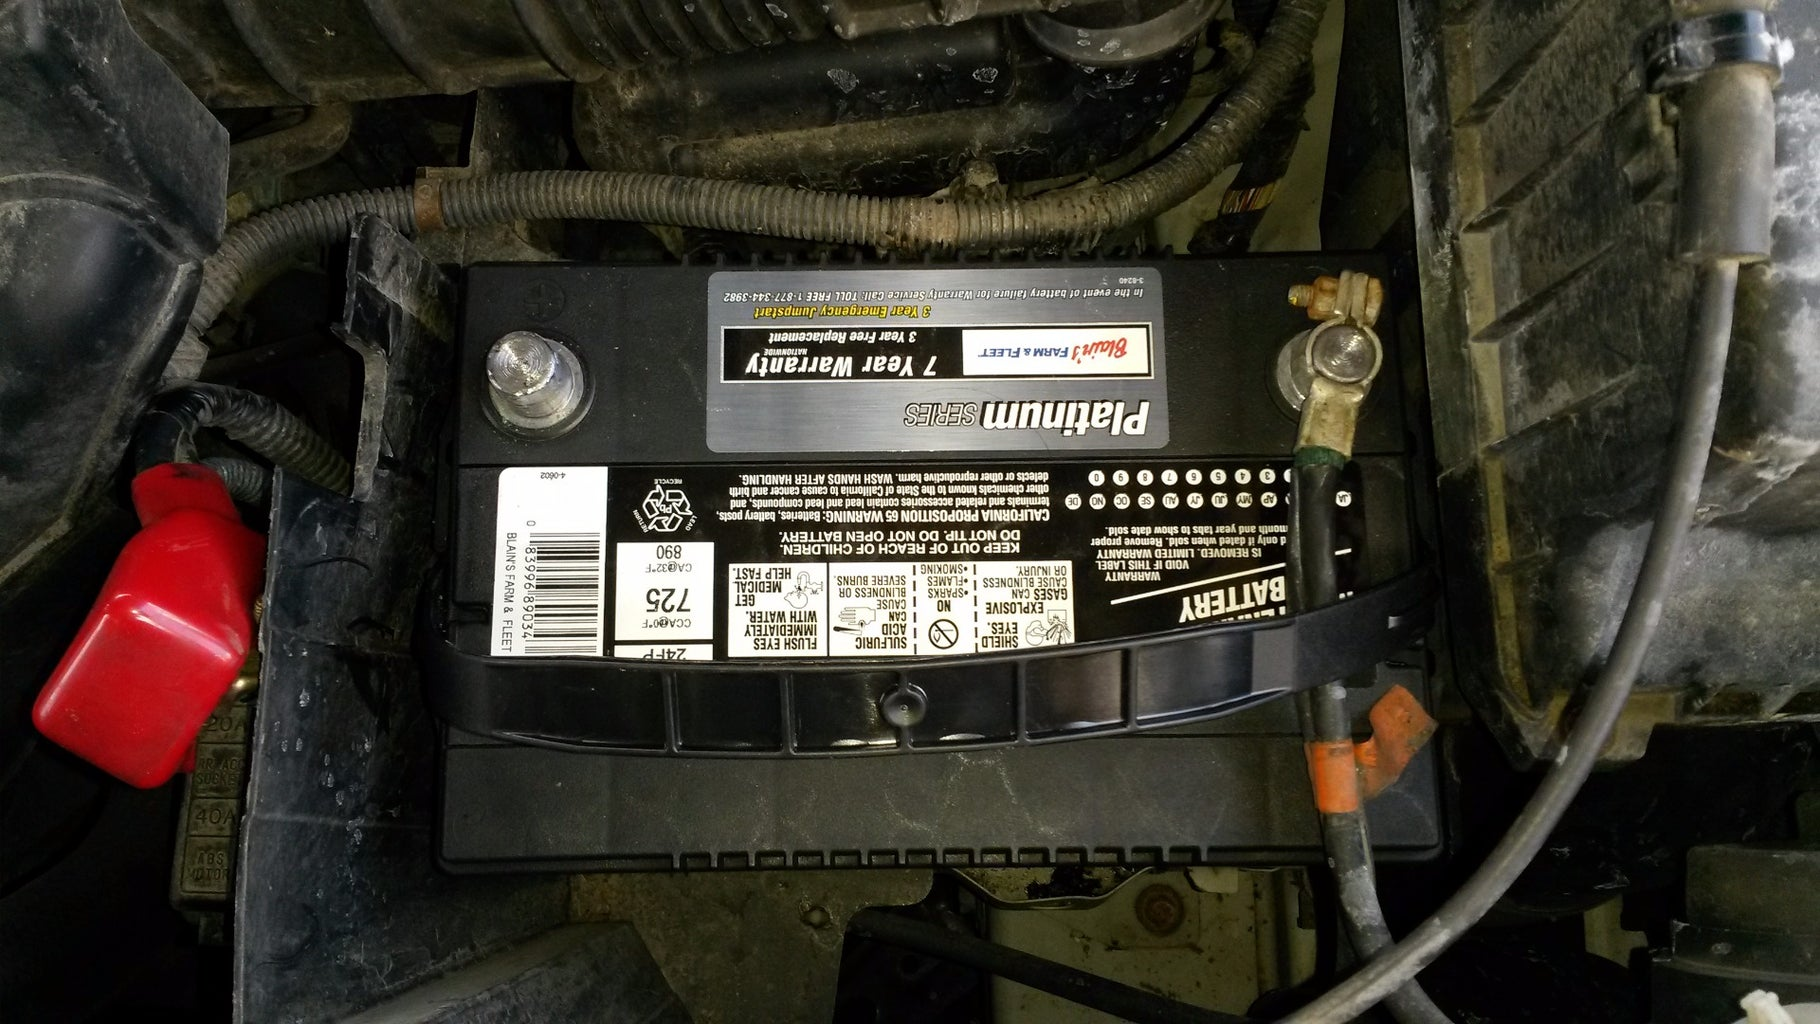 Last Step - Hook Up the Battery